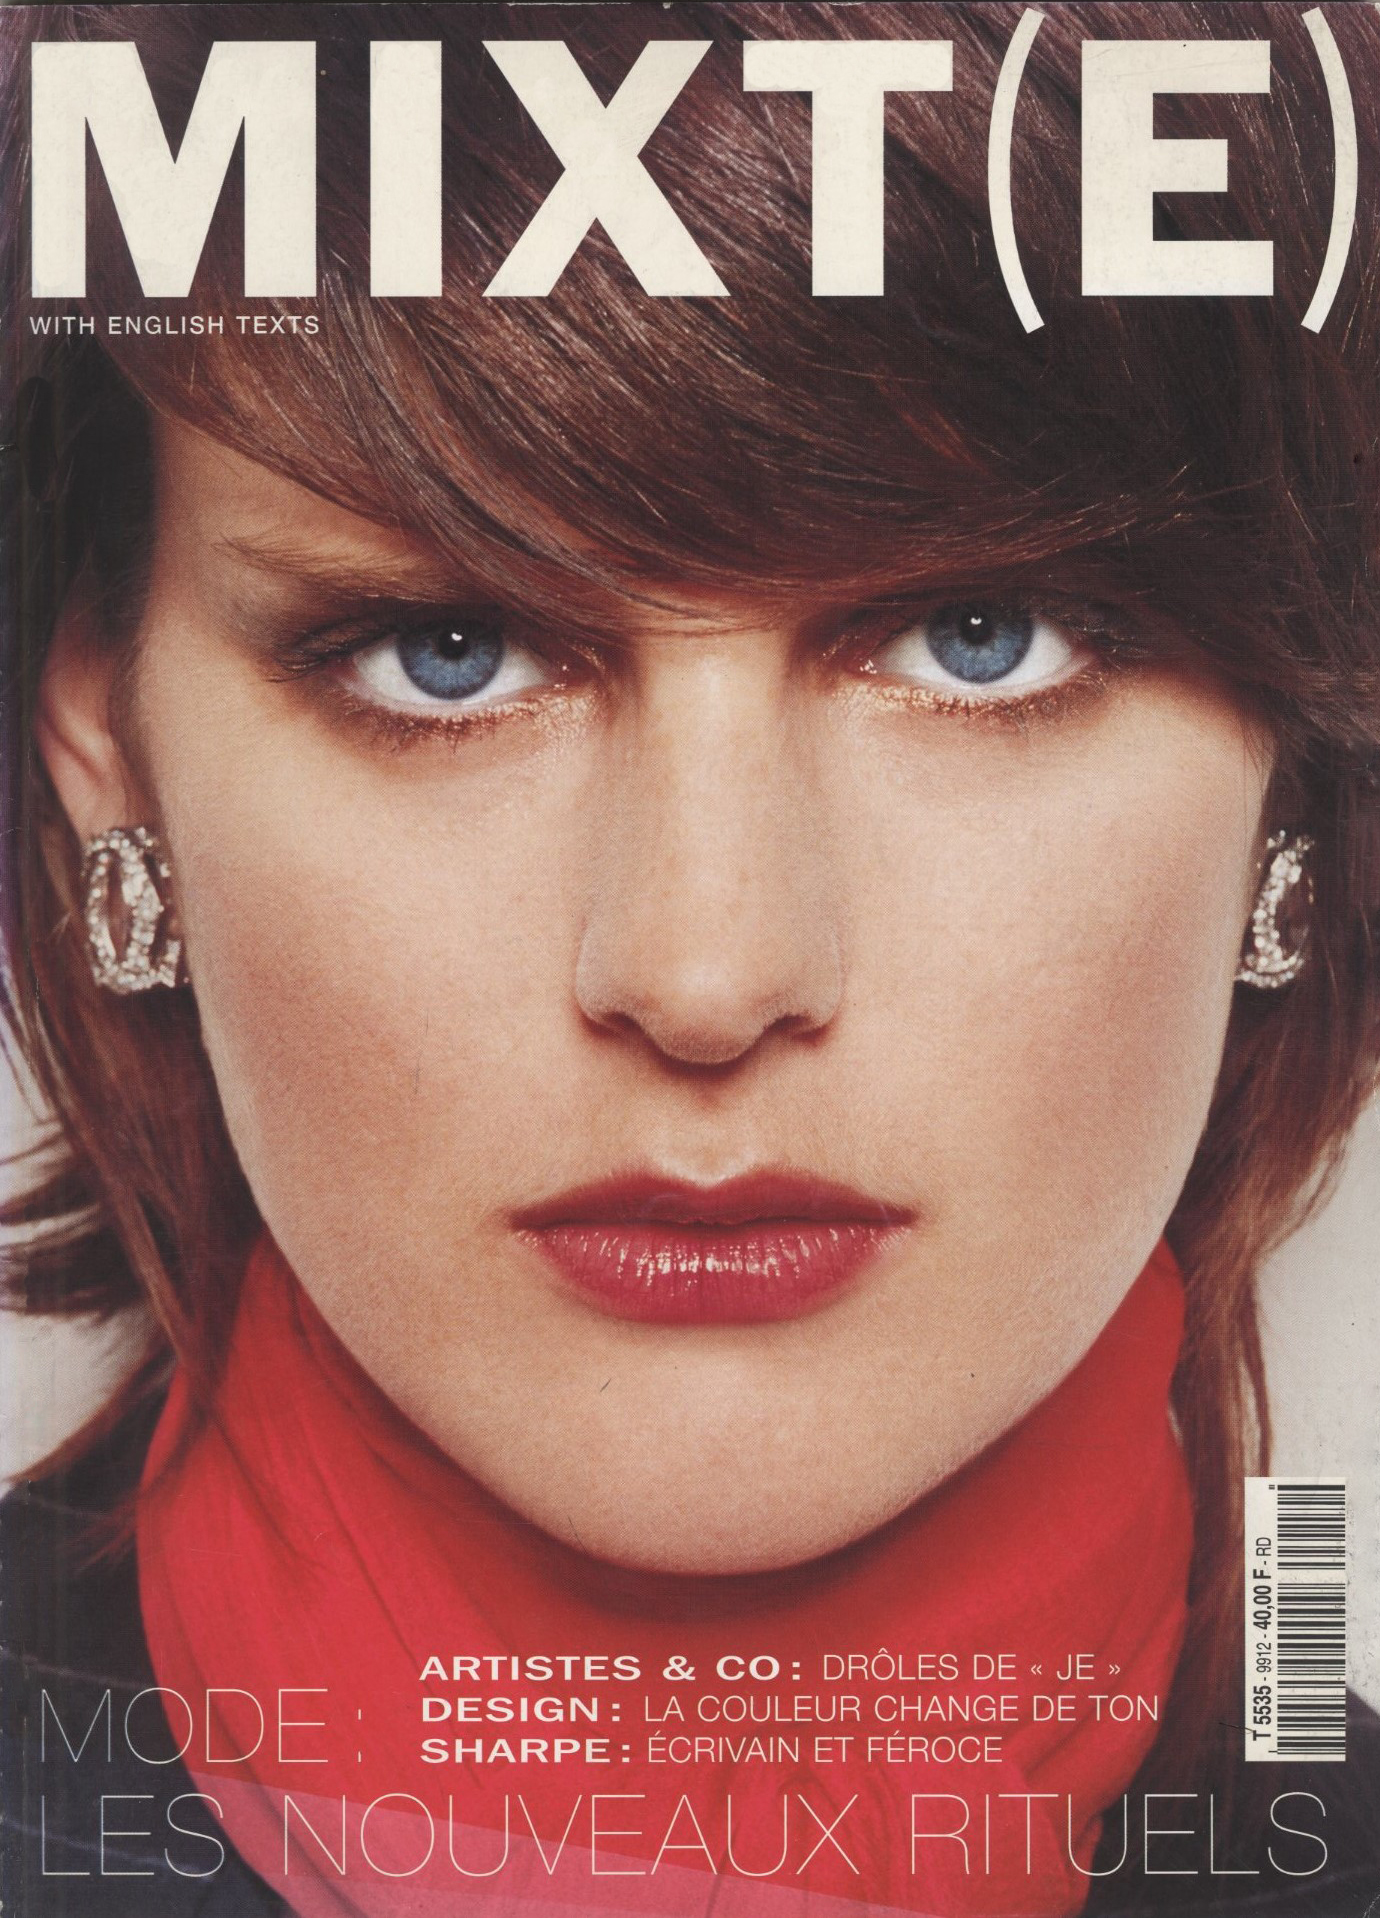 STELLA TENNANT PHOTOGRAPHY TERRY RICHARDSON STYLING EMMANUELLE ALT MIXT(E) N° 8 WINTER 2000